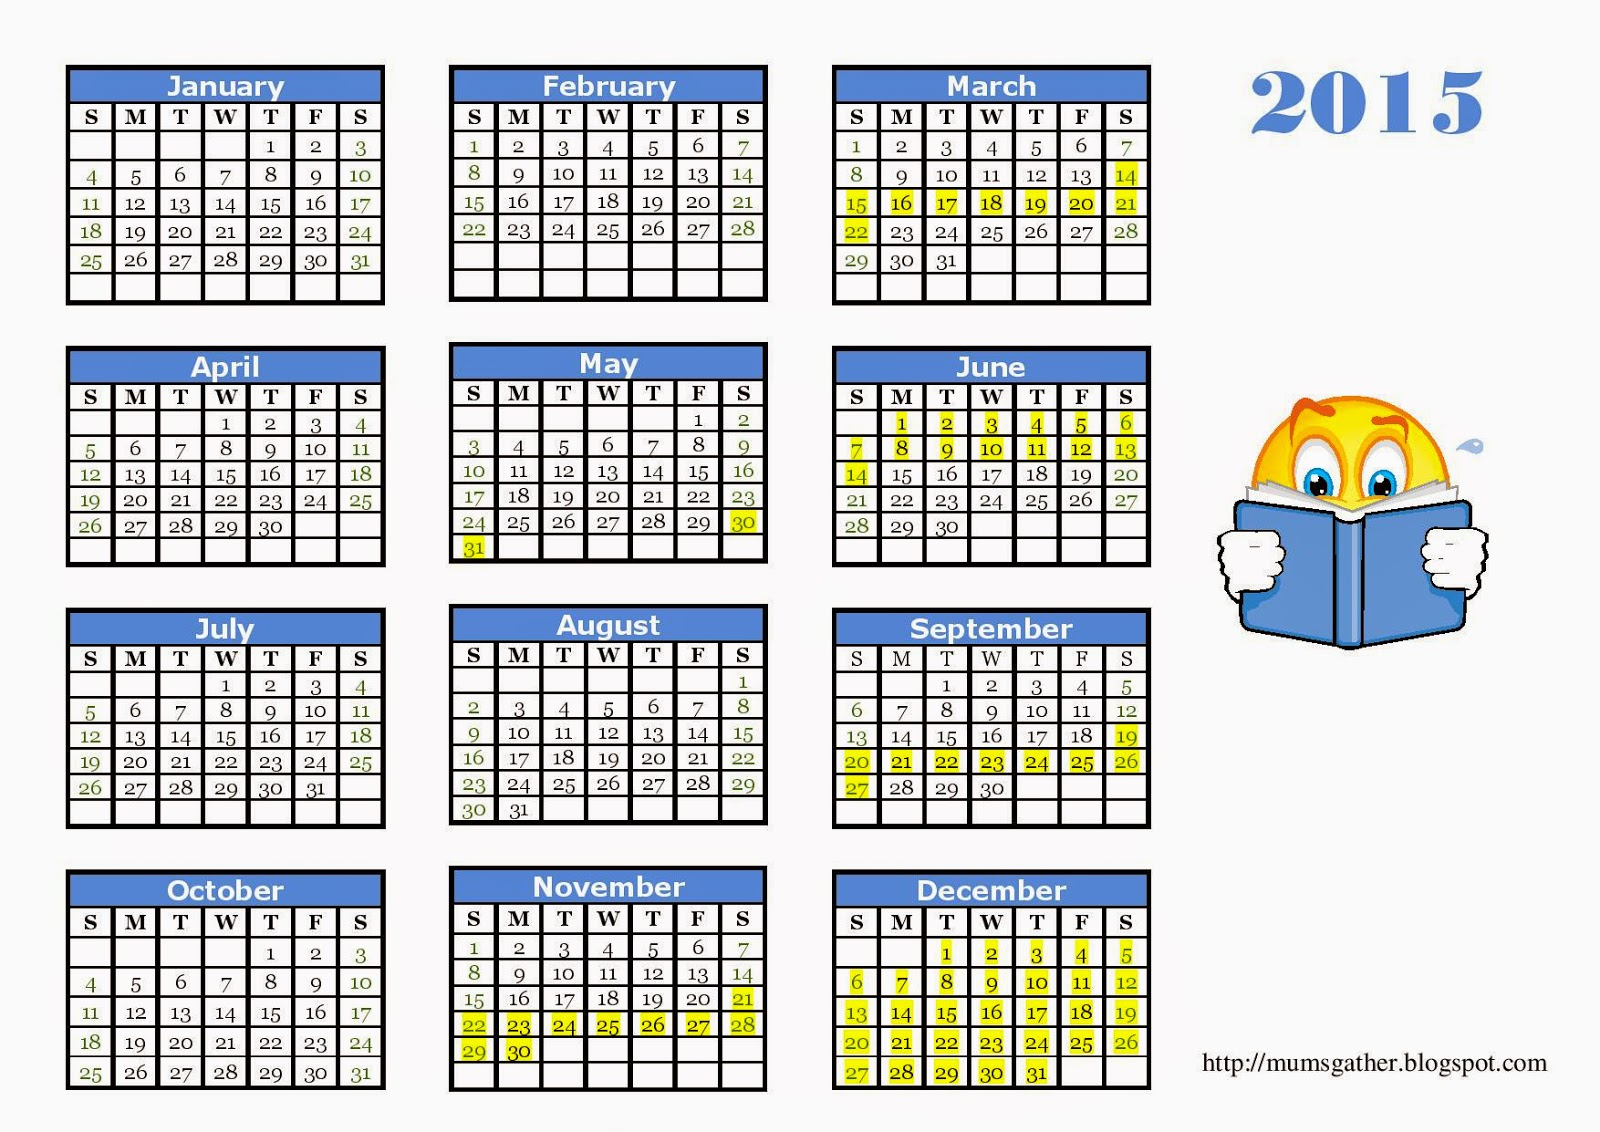 2015 Calendar For Kids With Malaysia School Holidays - Blue For Boys